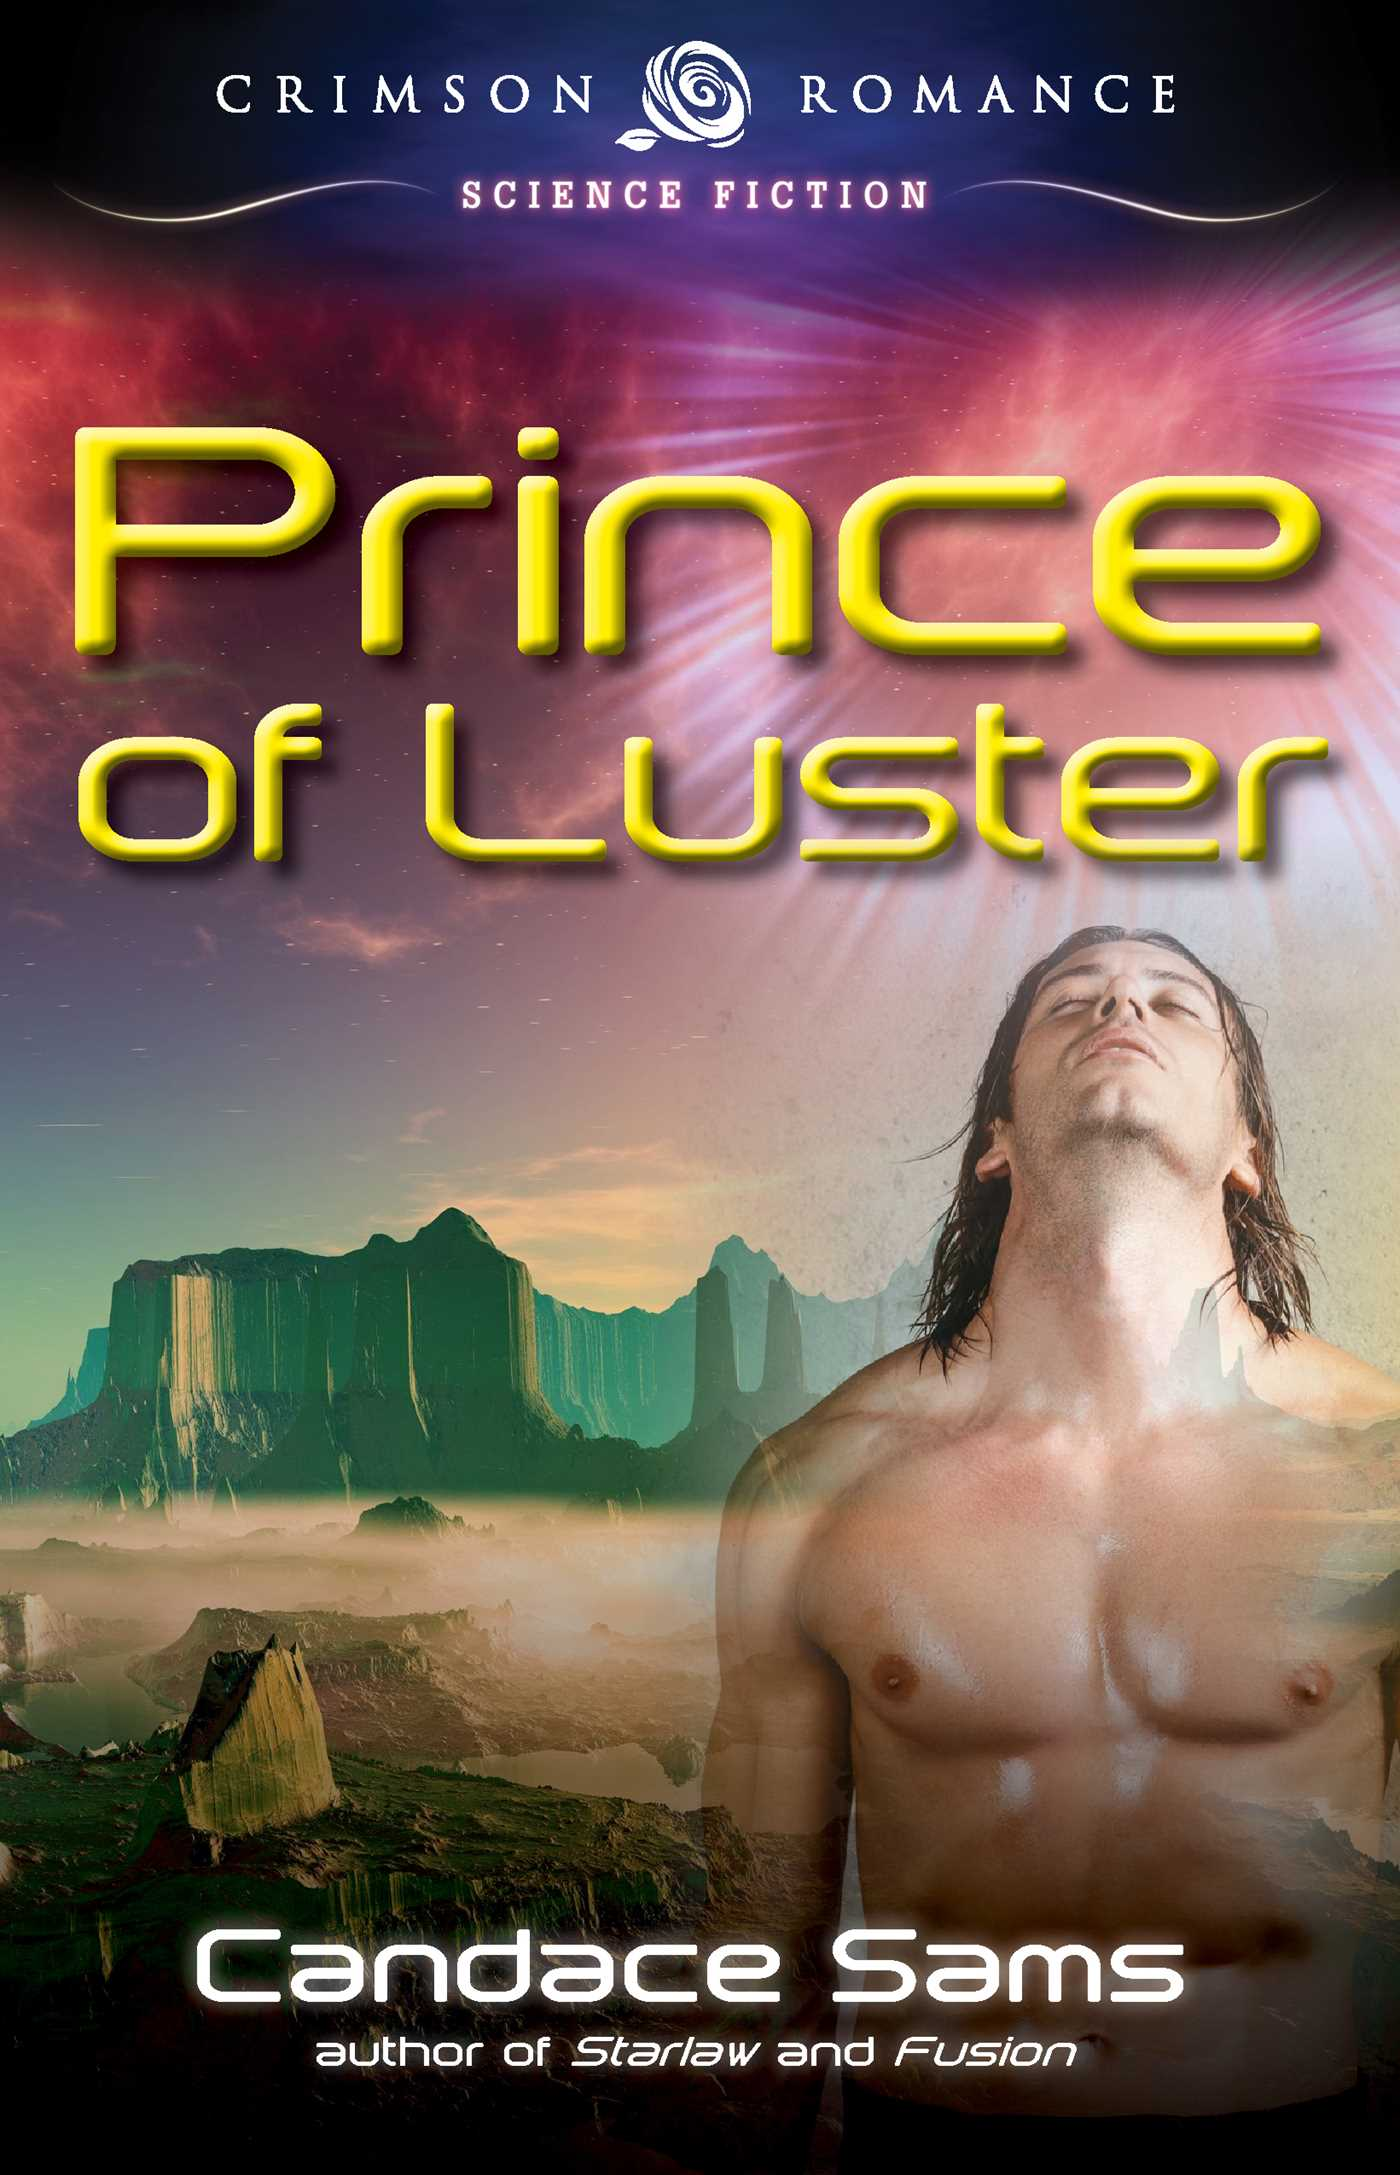 Prince of luster 9781440581915 hr